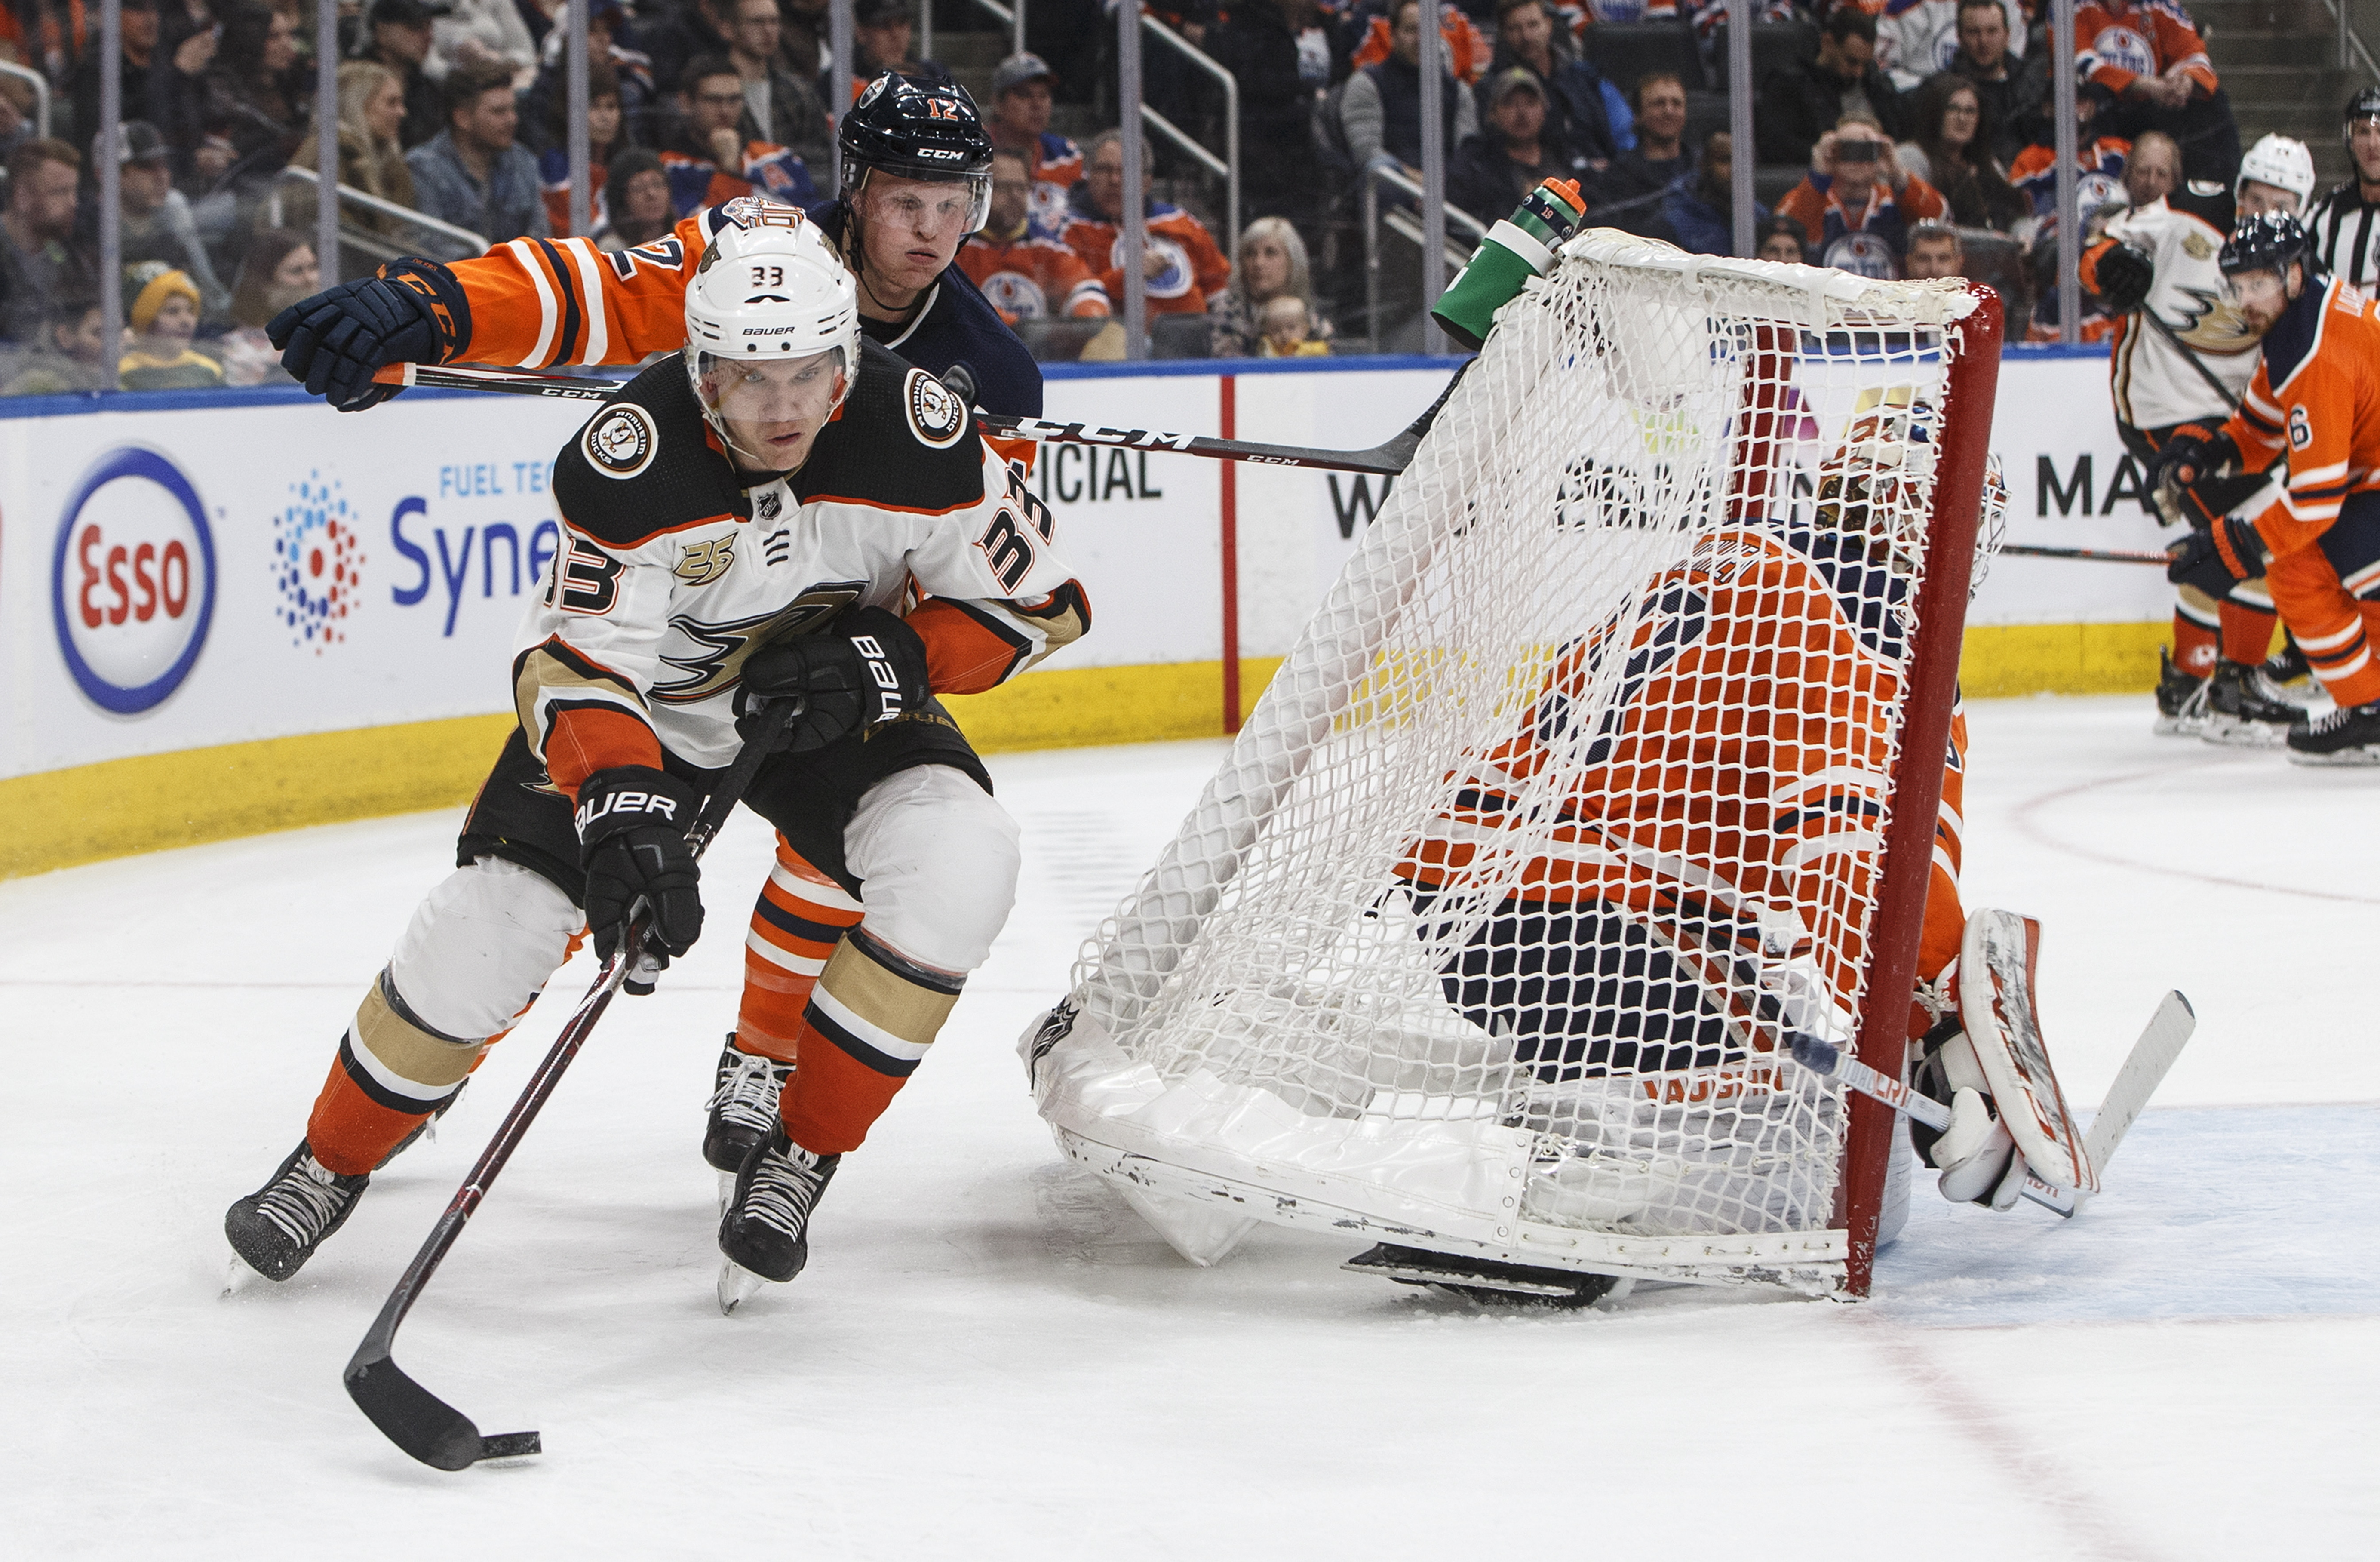 Ducks sign Silfverberg to $26.25 million, 5-year extension